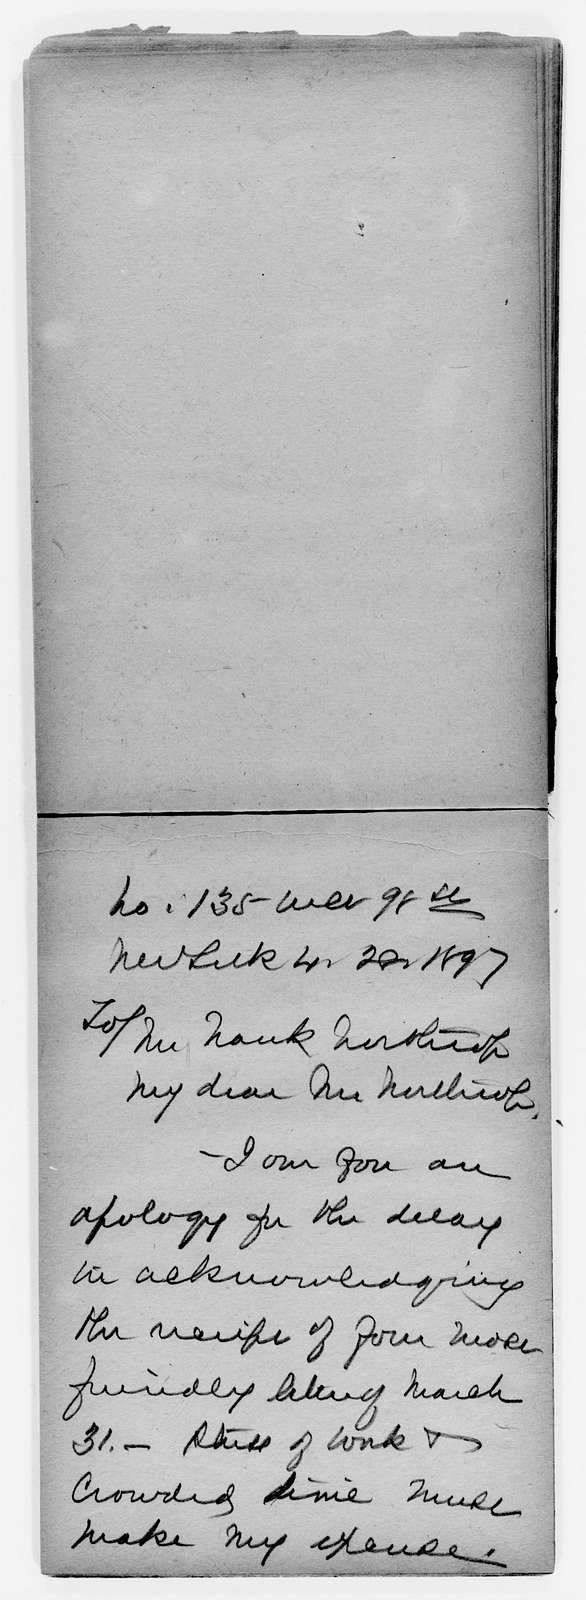 Anna E. Dickinson Papers: Speeches and Writings File, 1868-1907; Miscellany; Notes; 3 of 9